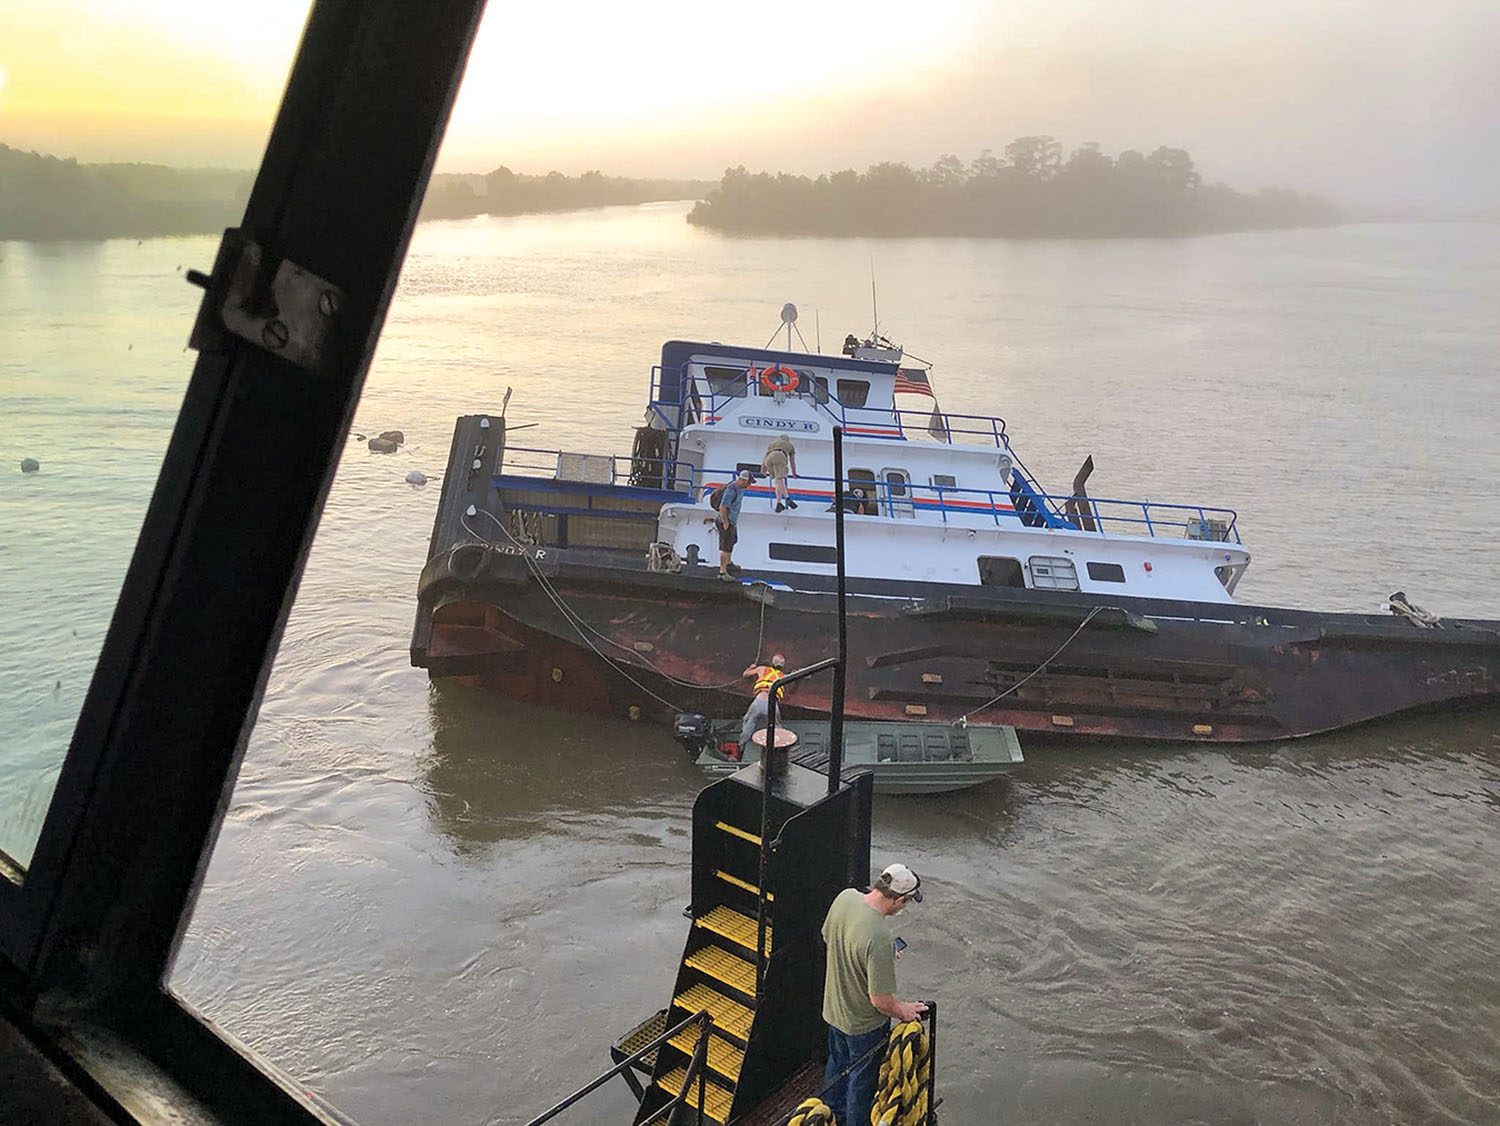 The towboat Cindy R sank on the morning of May 2. (Photo by Robert Edwards)